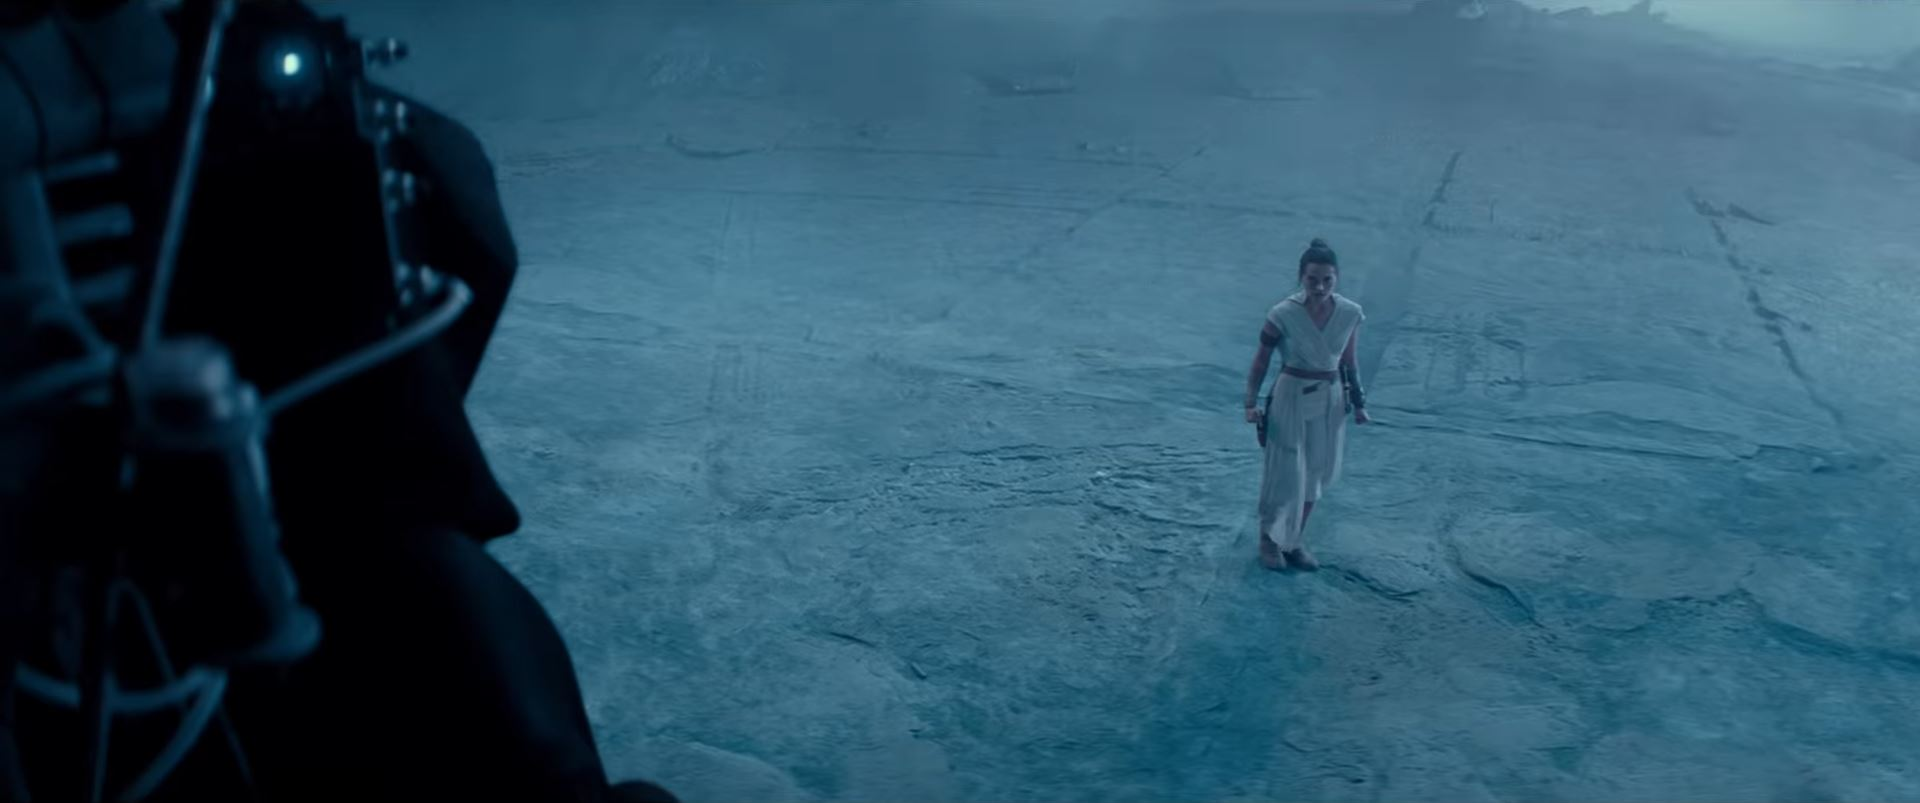 Rey confronts Palpatine Darth Sidious in The Rise of Skywalker